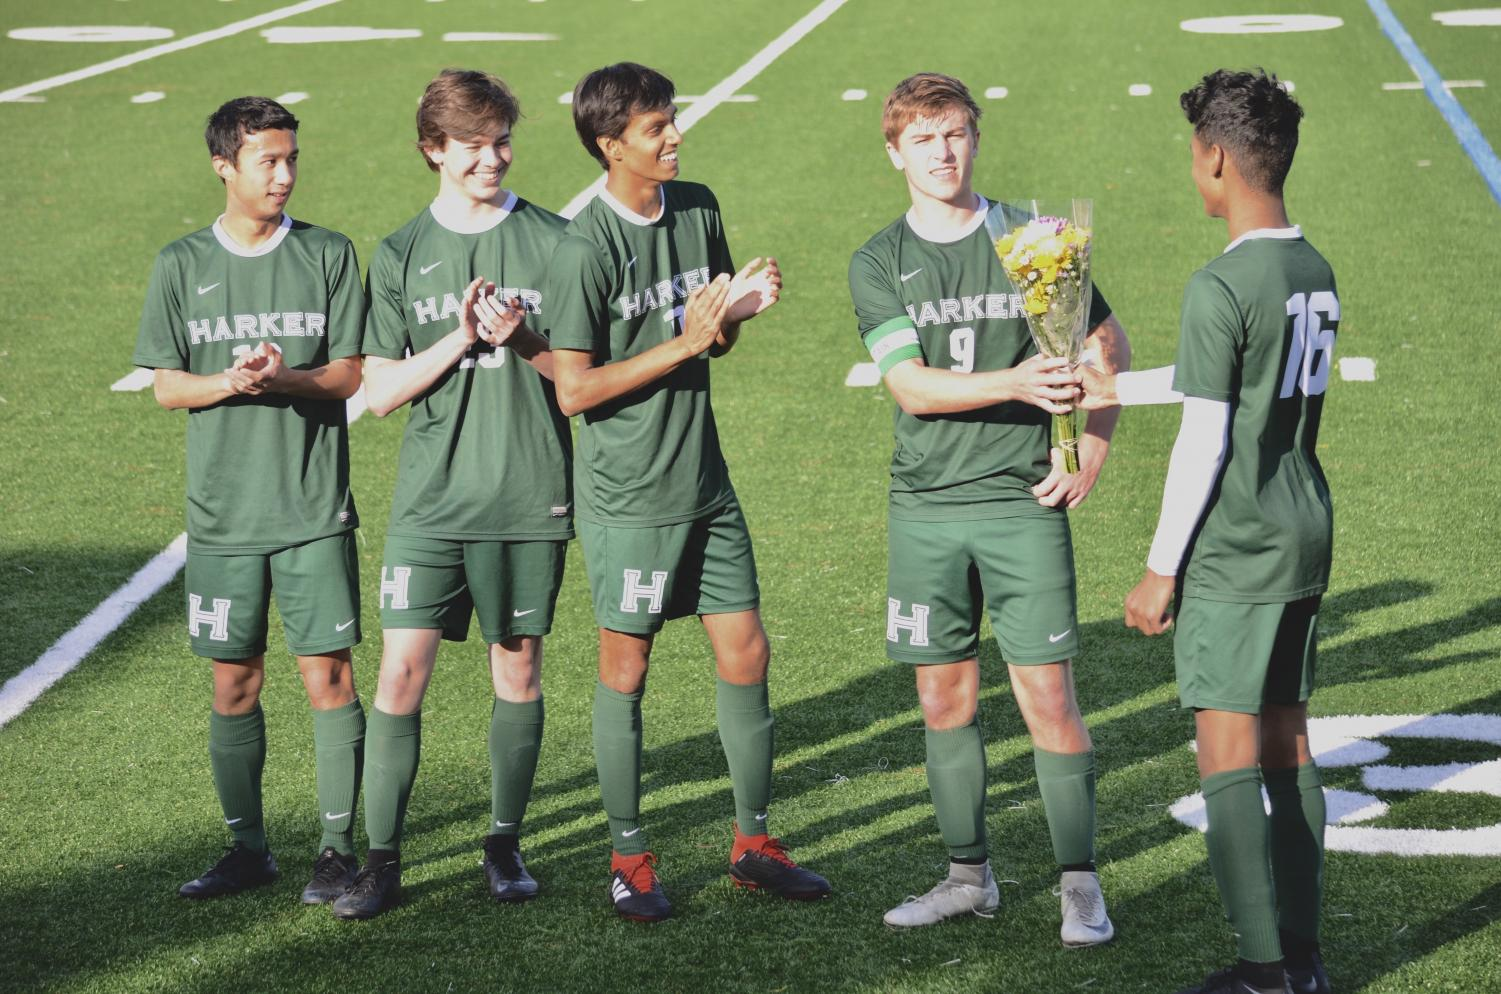 Shomrik Mondal (11) hands a bouquet to varsity captain Jared Anderson during the halftime senior recognition ceremony. The ceremony honored Edwin Su, Jack Dawson, Krish Kapadia and Jared.